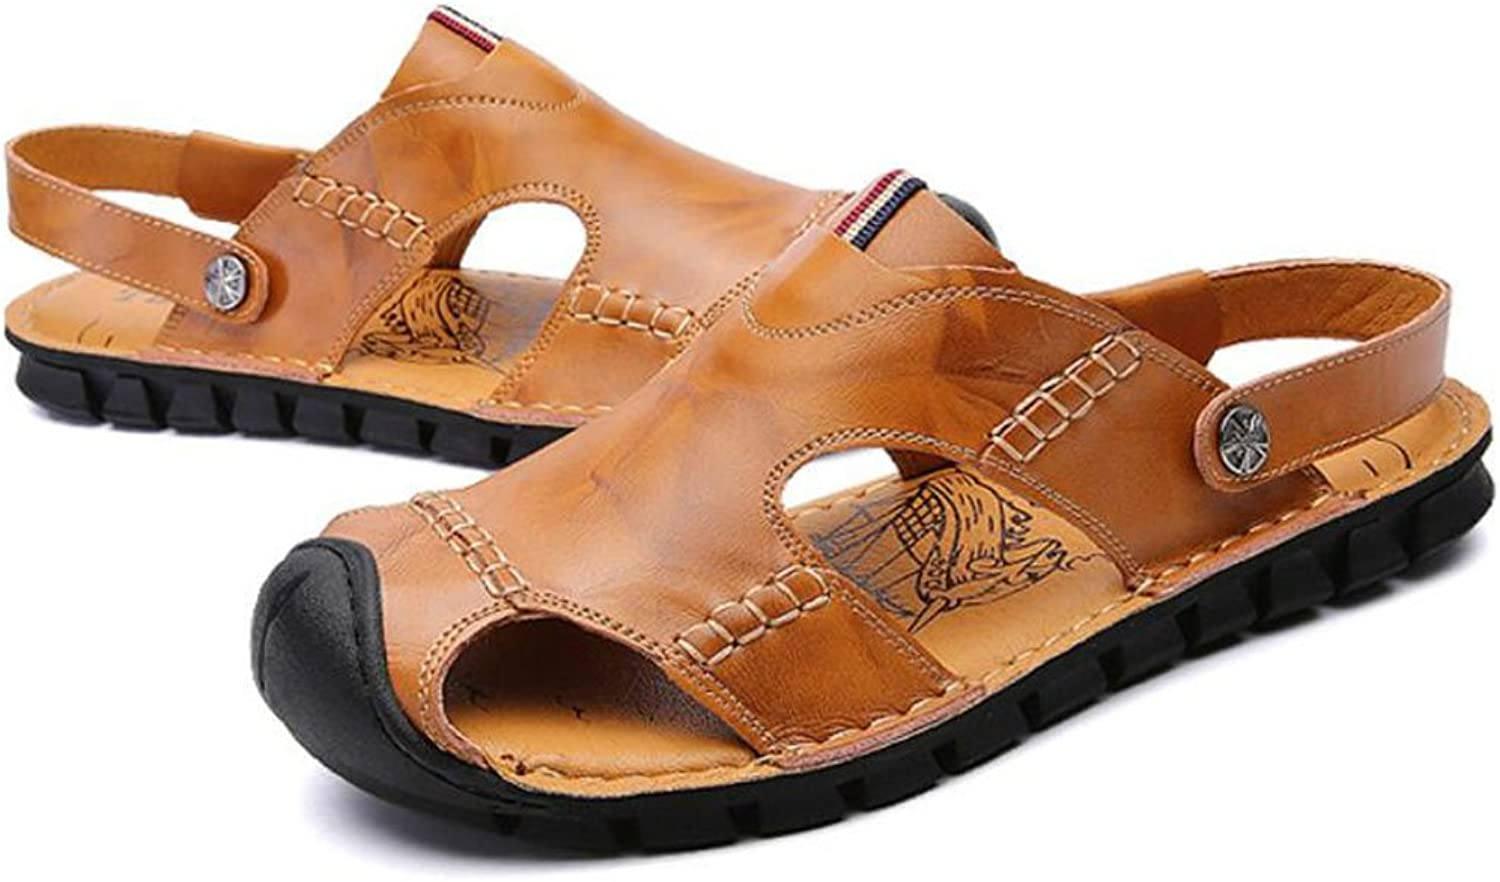 GAOLIXIA Men's Leather Breathable Sandals Summer Hollow Slippers Comfortable Outdoor Casual shoes Fashion Durable Beach shoes